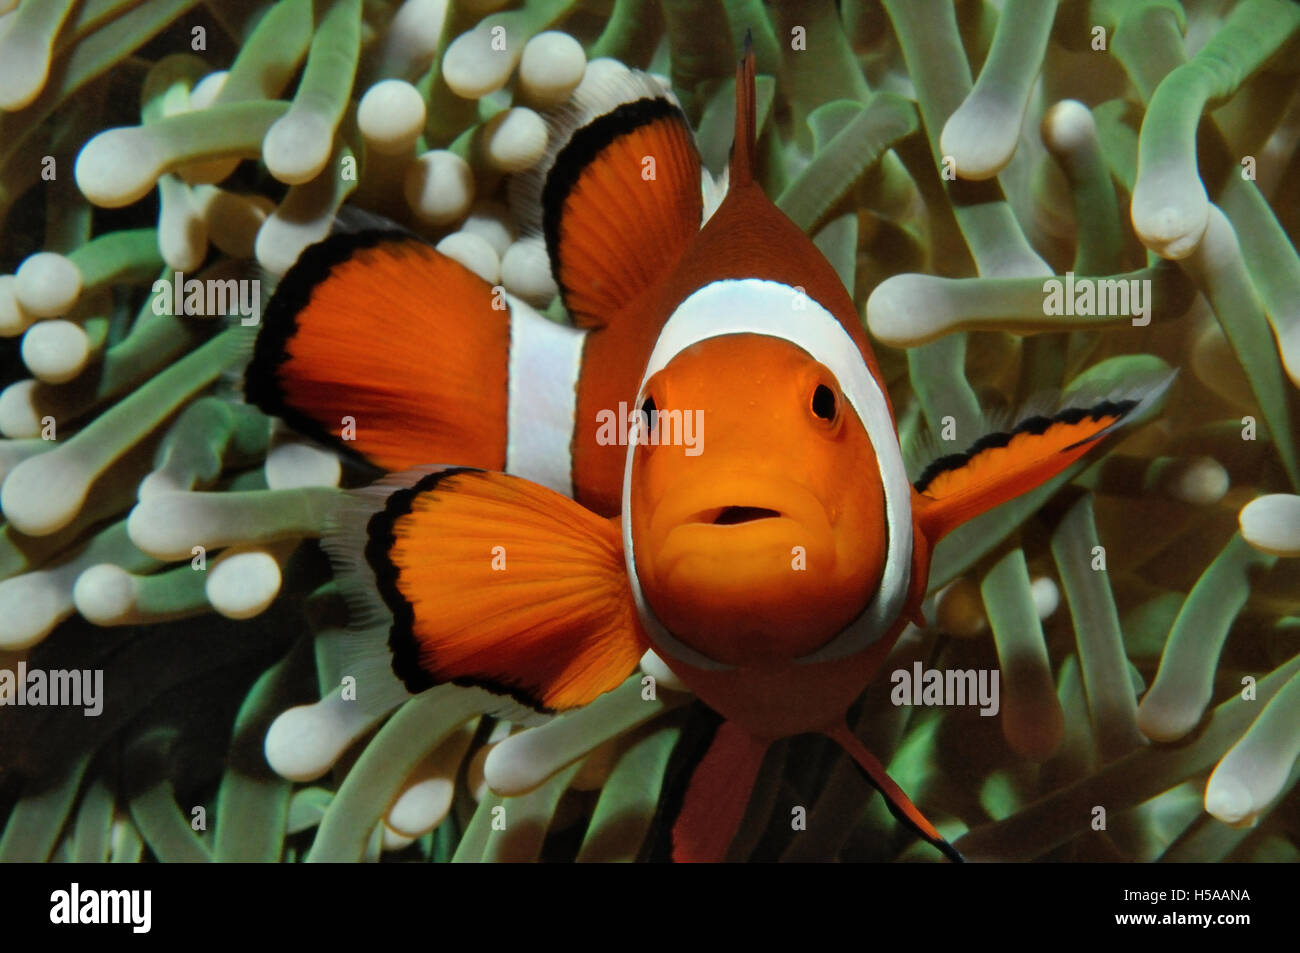 Amphiprion Western Clownfish Ocellaris Clownfish False